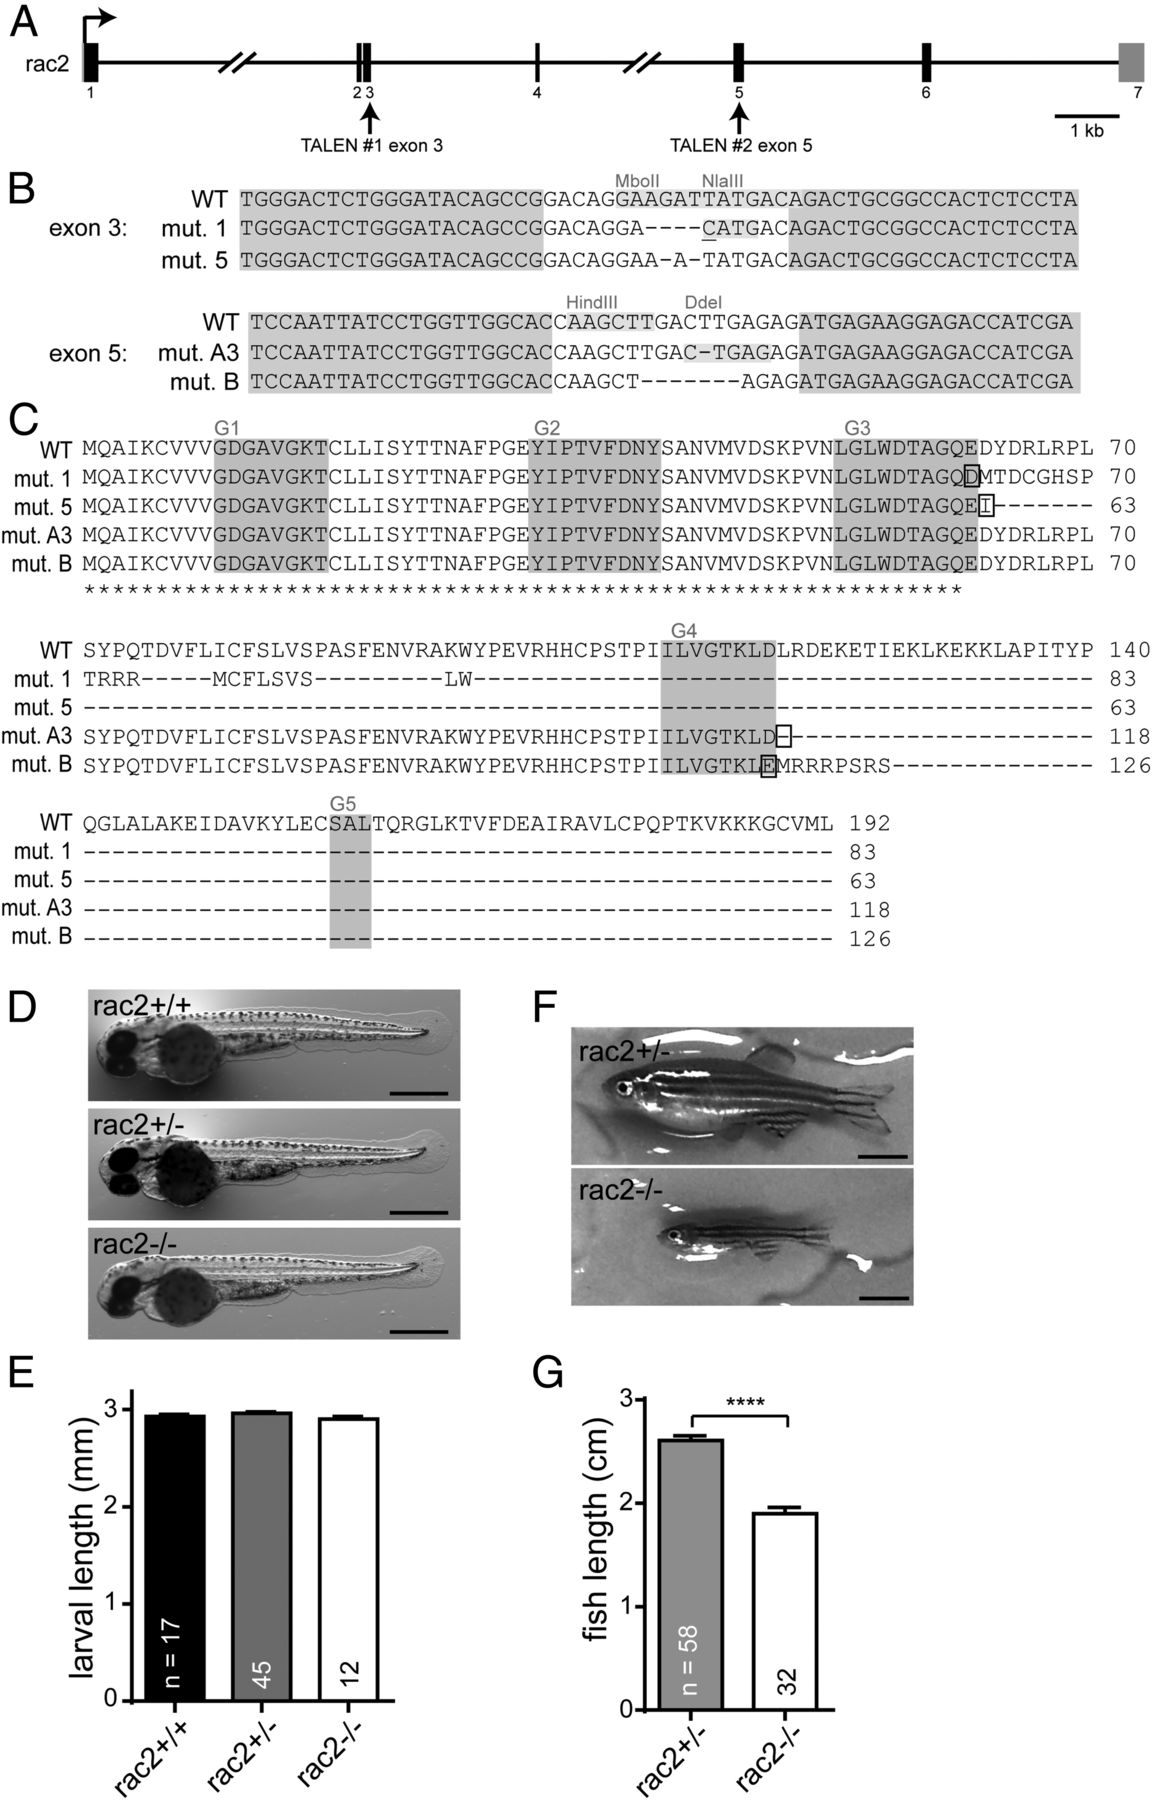 rac2 functions in both neutrophils and macrophages to mediate